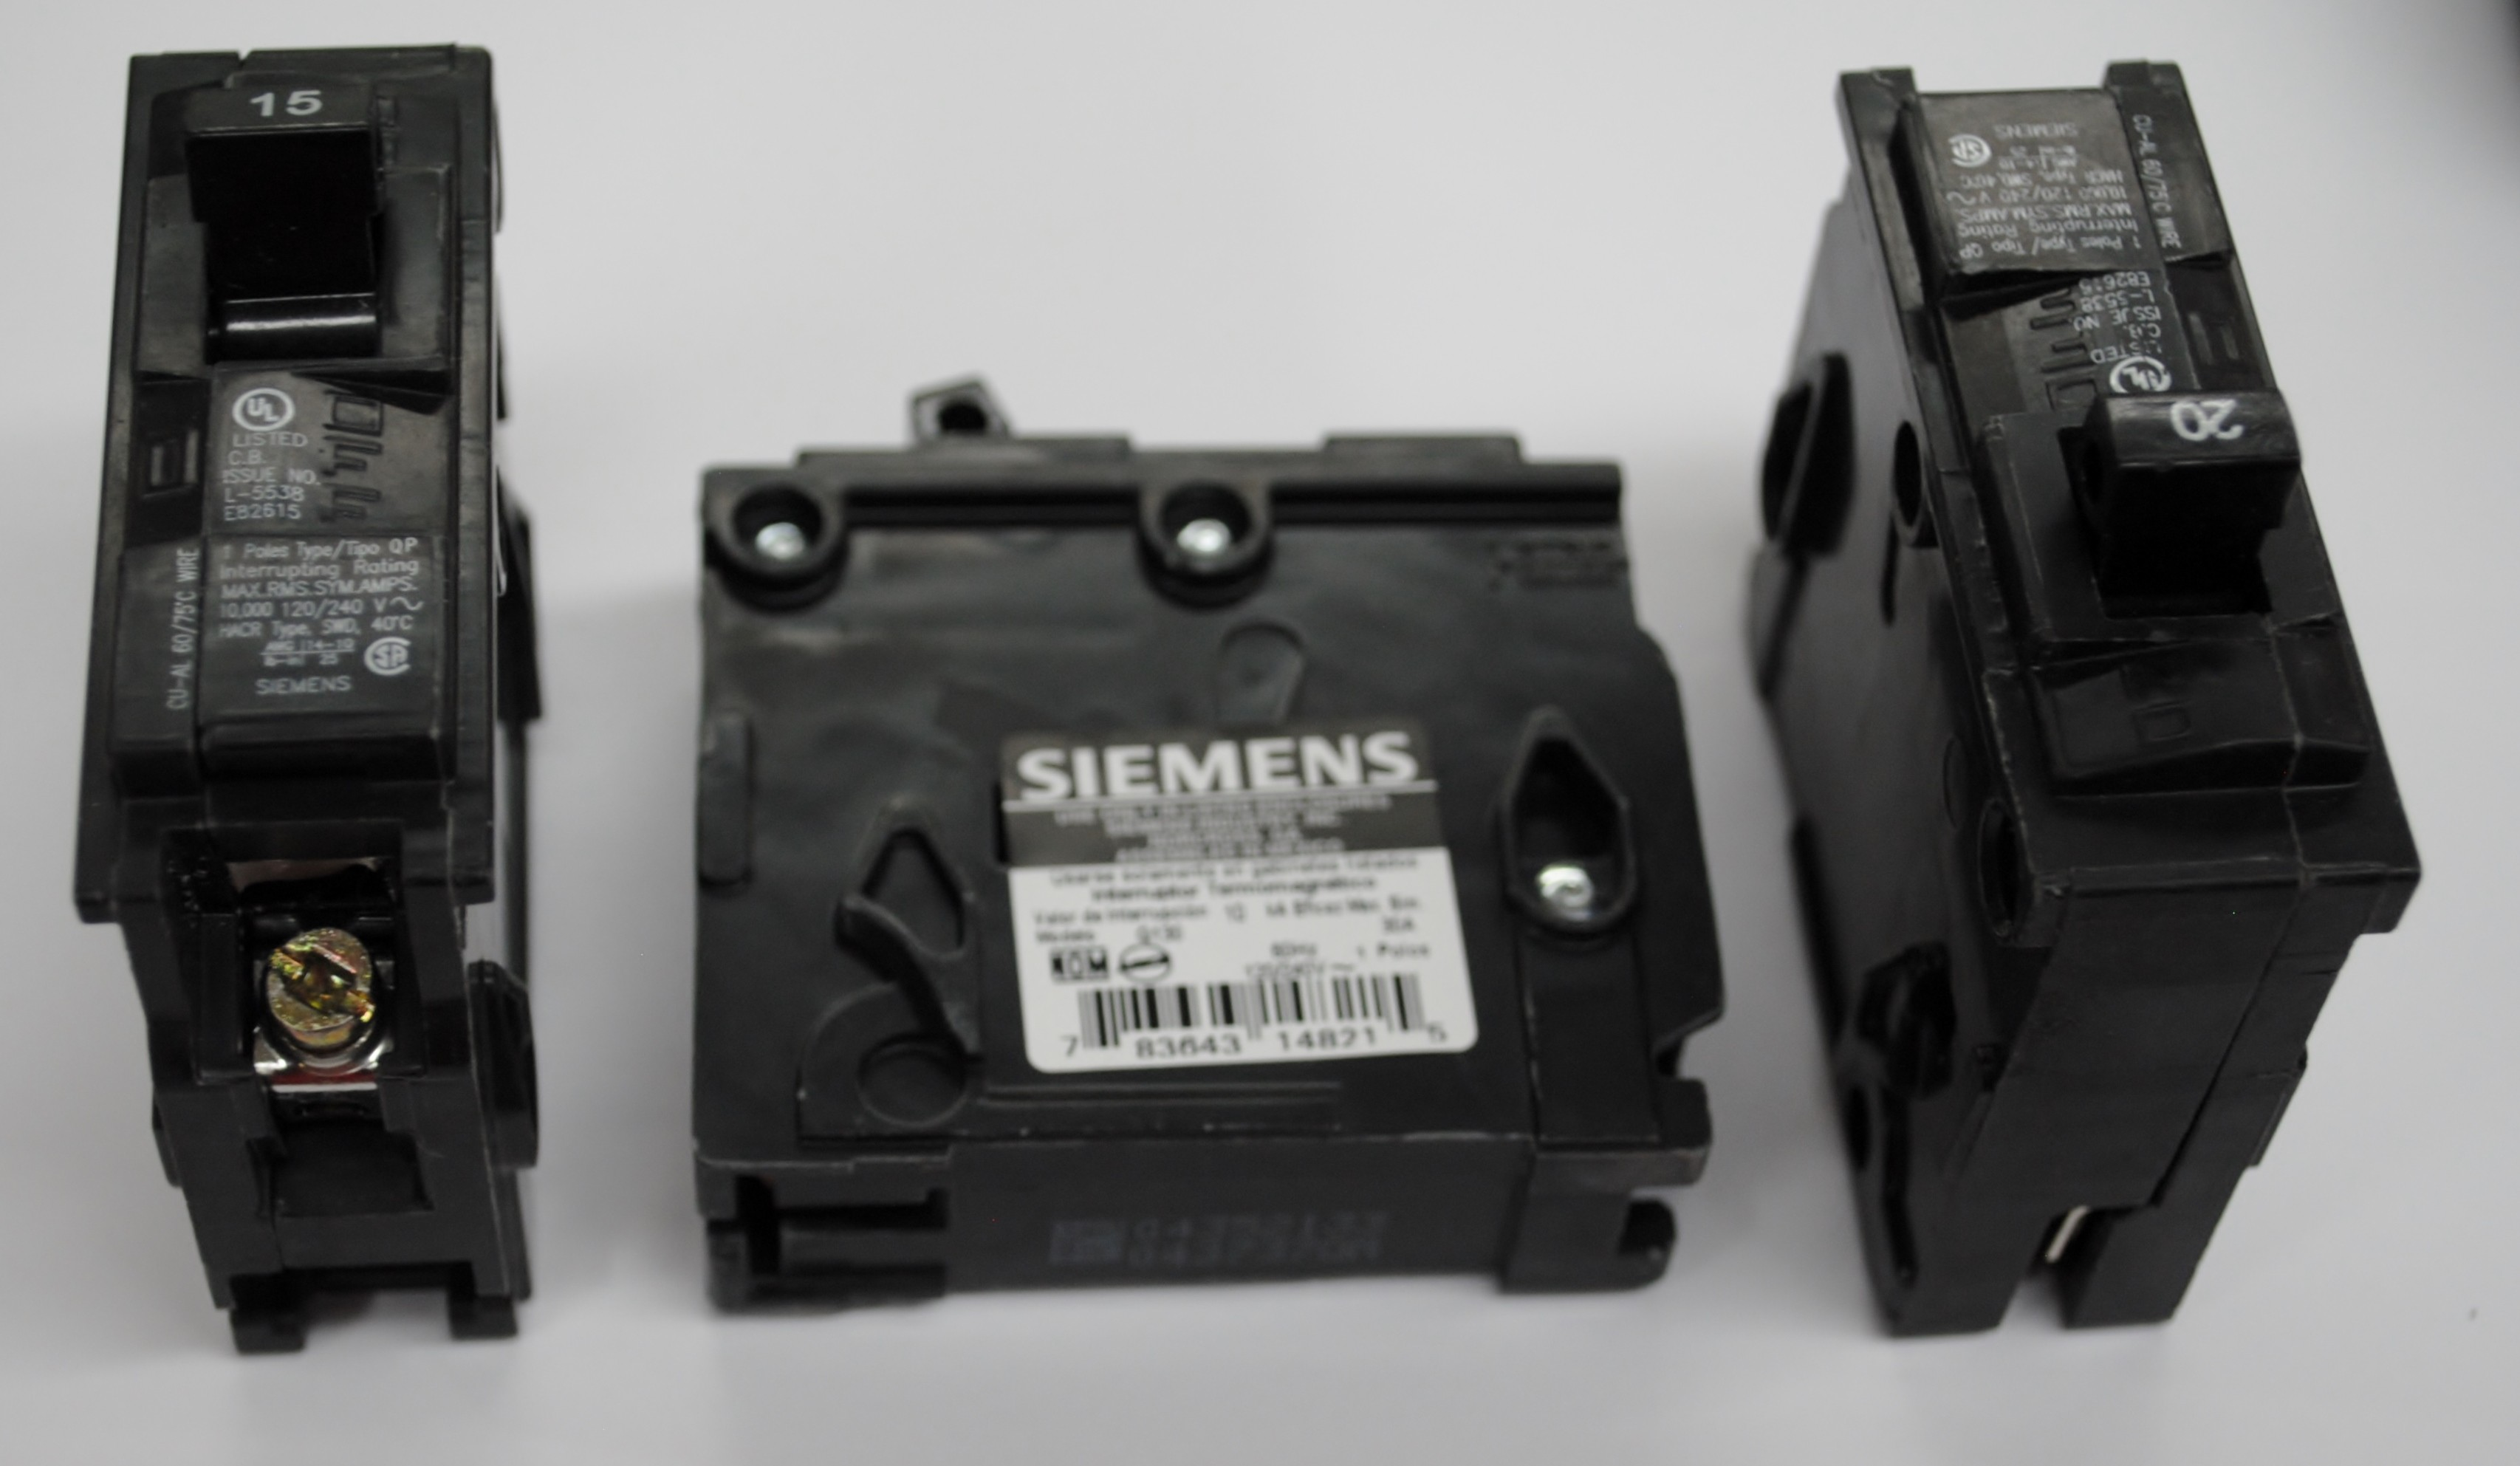 Snap 15 Amp Breaker The Cherokeeroofingco Photos On Pinterest 15a 1p Qo Circuit Rona Siemens Ite Plug In 10ka 120v Breakers